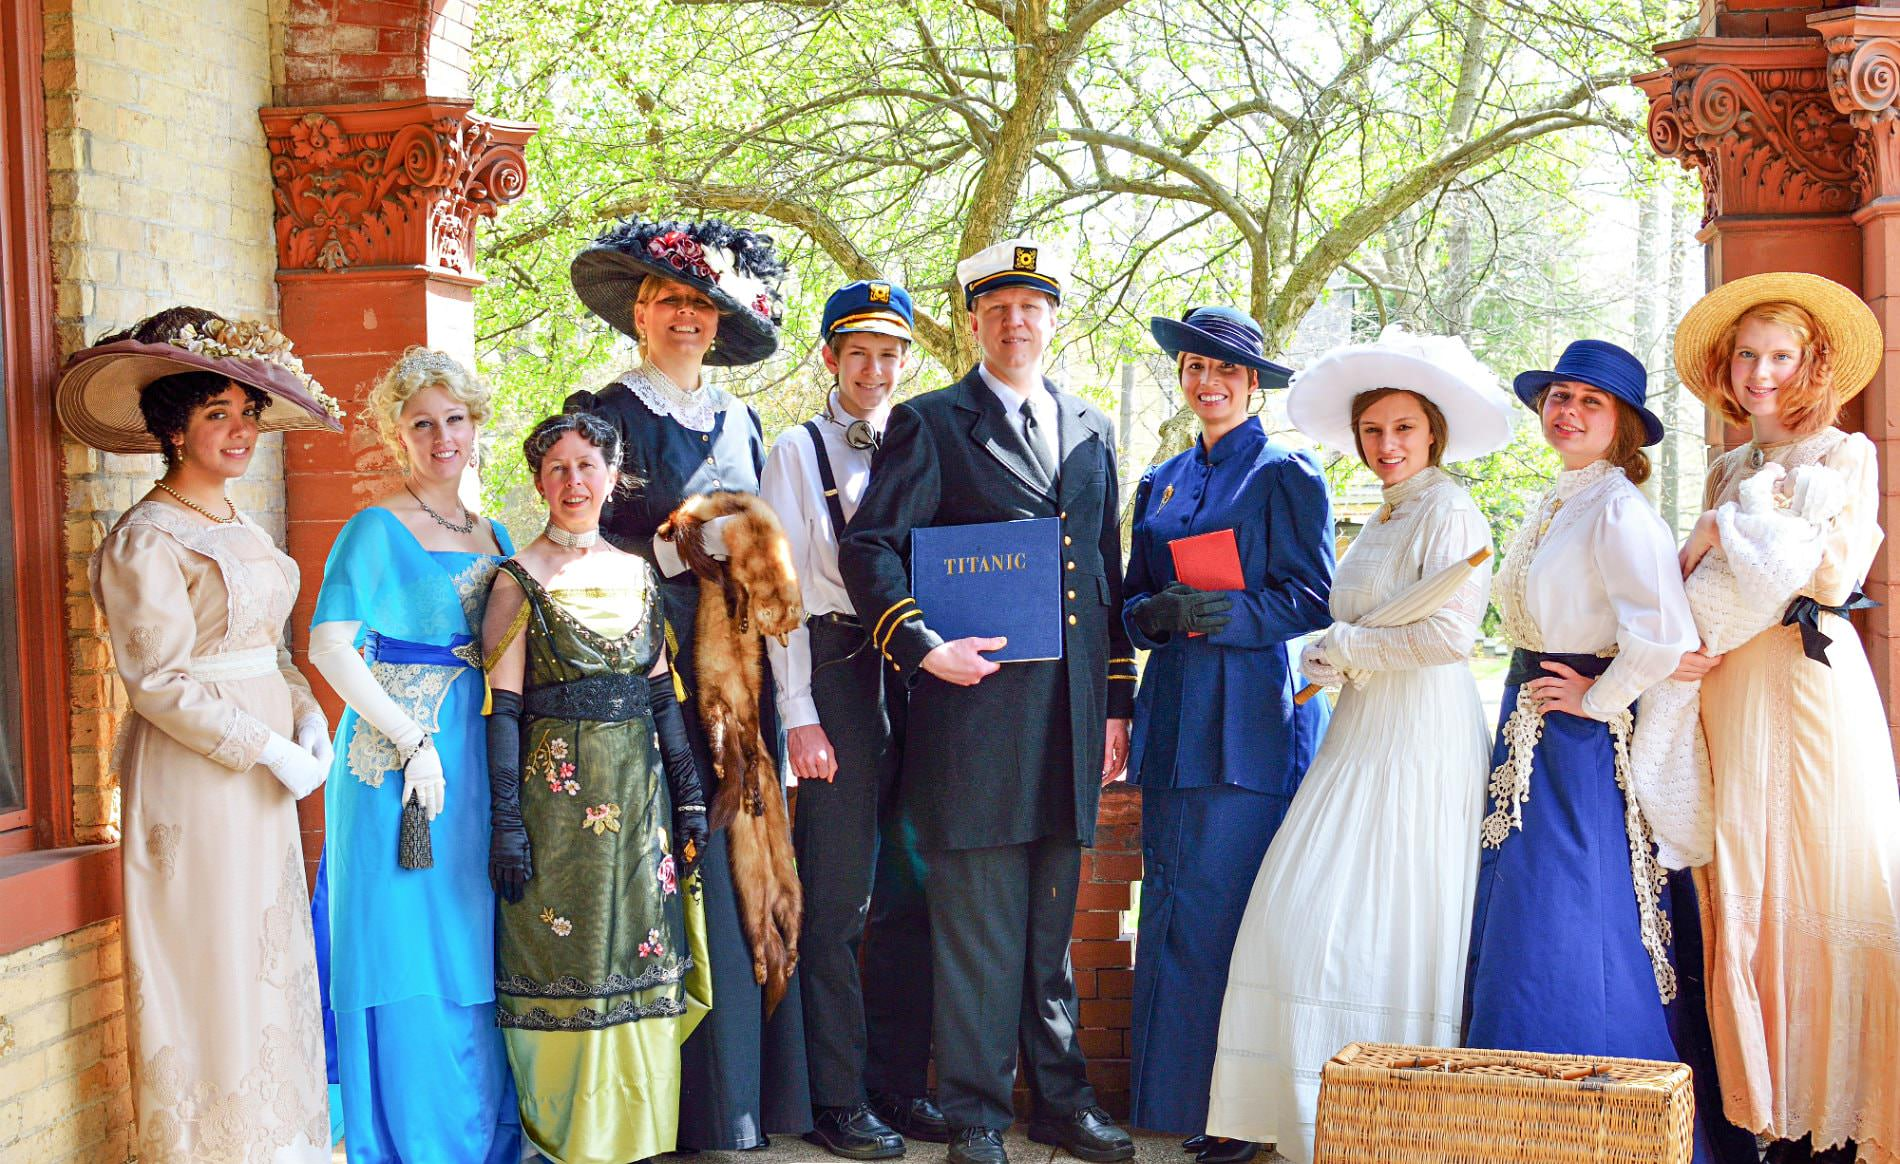 Group of people standing on the covered porch wearing old-fashioned elegant clothing in blues, whites and other colors